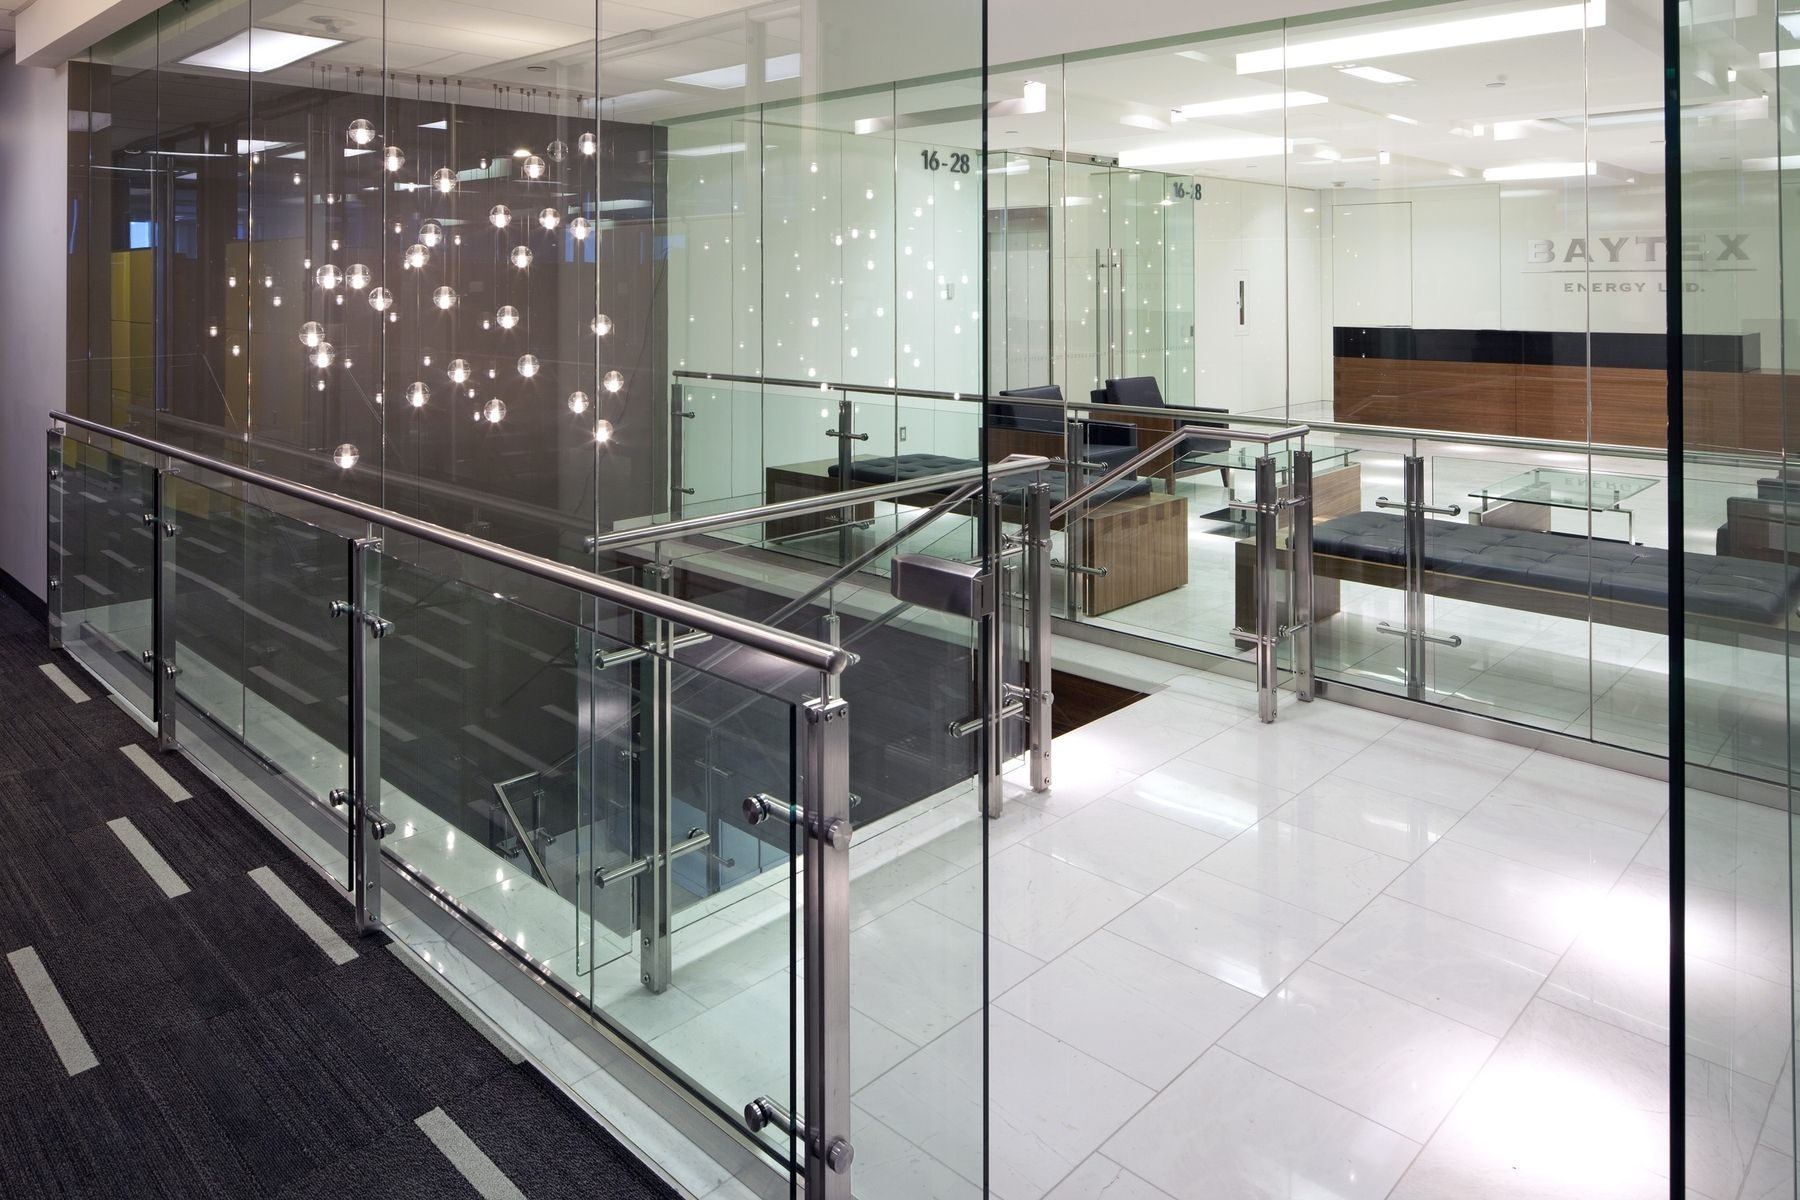 Hand Made Stainless Steel And Glass Stair Rail System By Prestige | Glass Stair Railing Systems | Iron | Custom | Contemporary | Baluster | Design